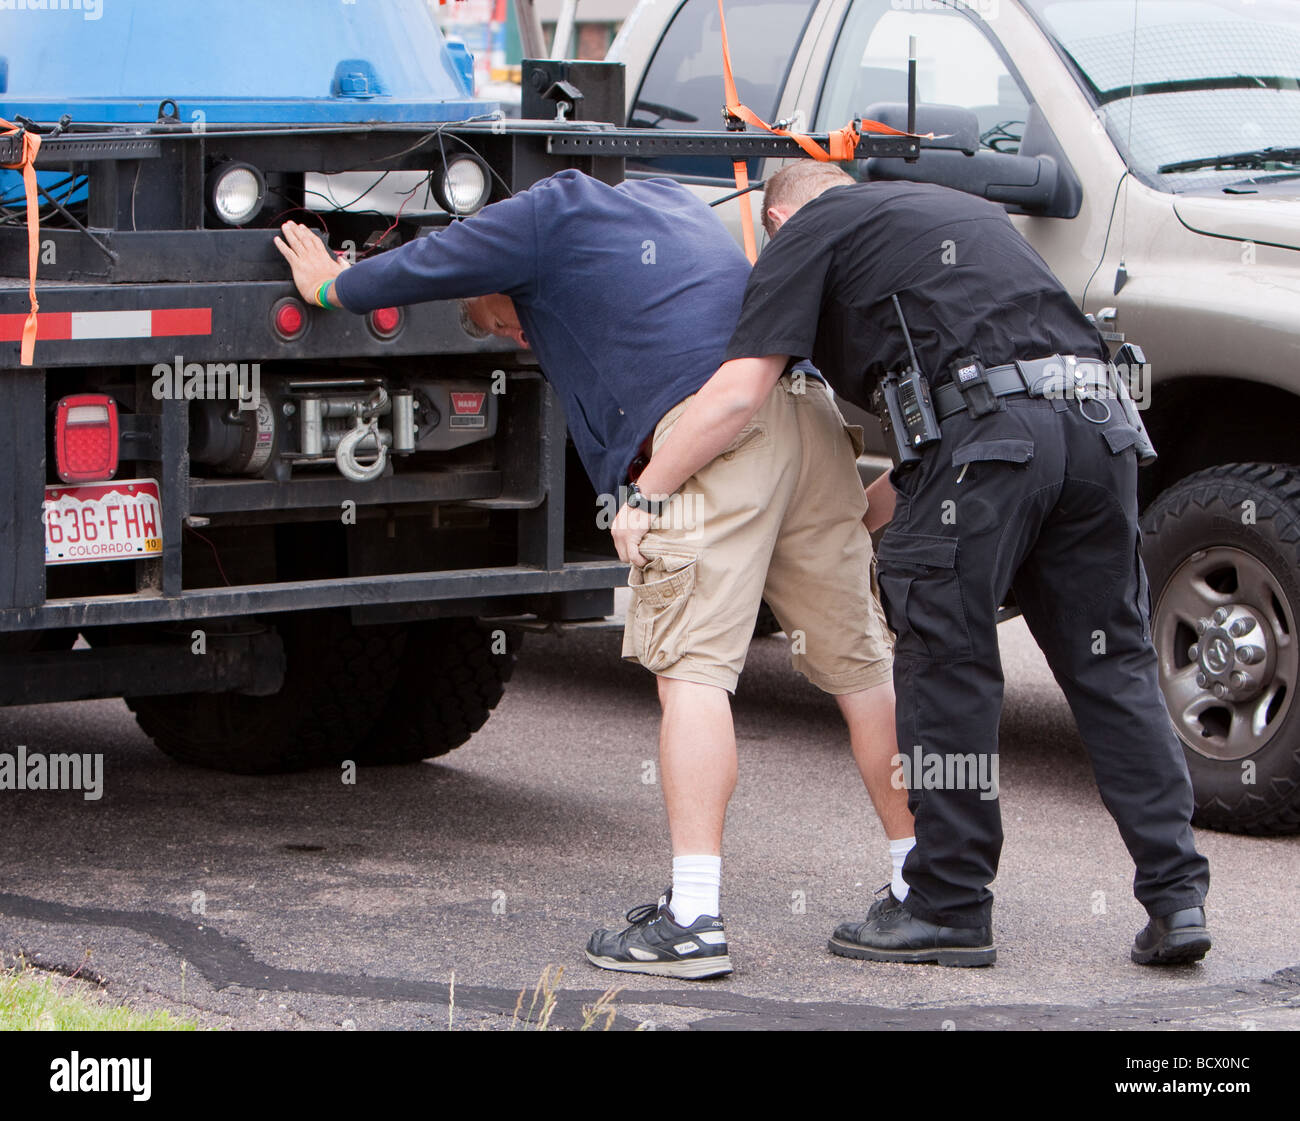 A fake arrest a real Salina Kansas police officer pretends to frisk a man. - Stock Image